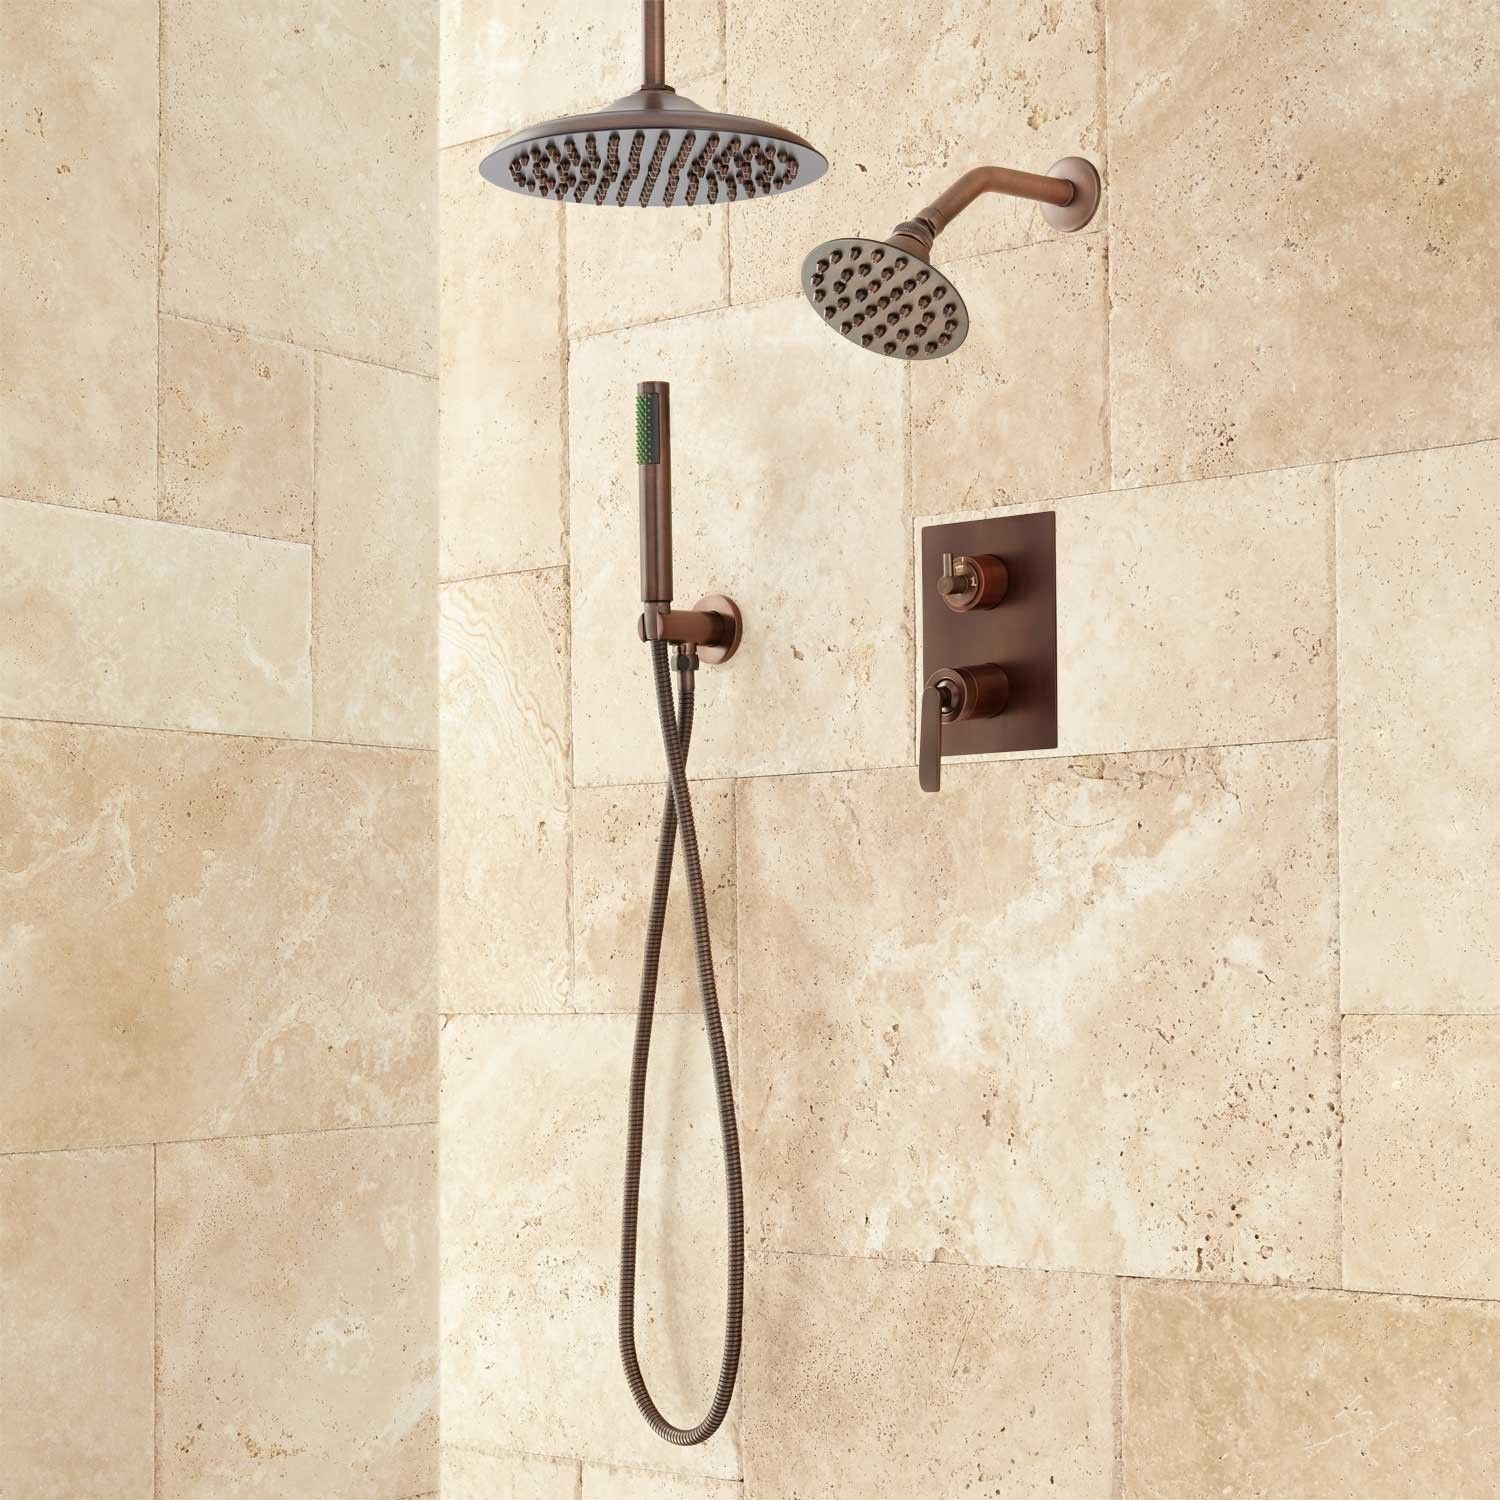 Trimble Dual Shower Head Shower System with Hand Shower | Dual ...